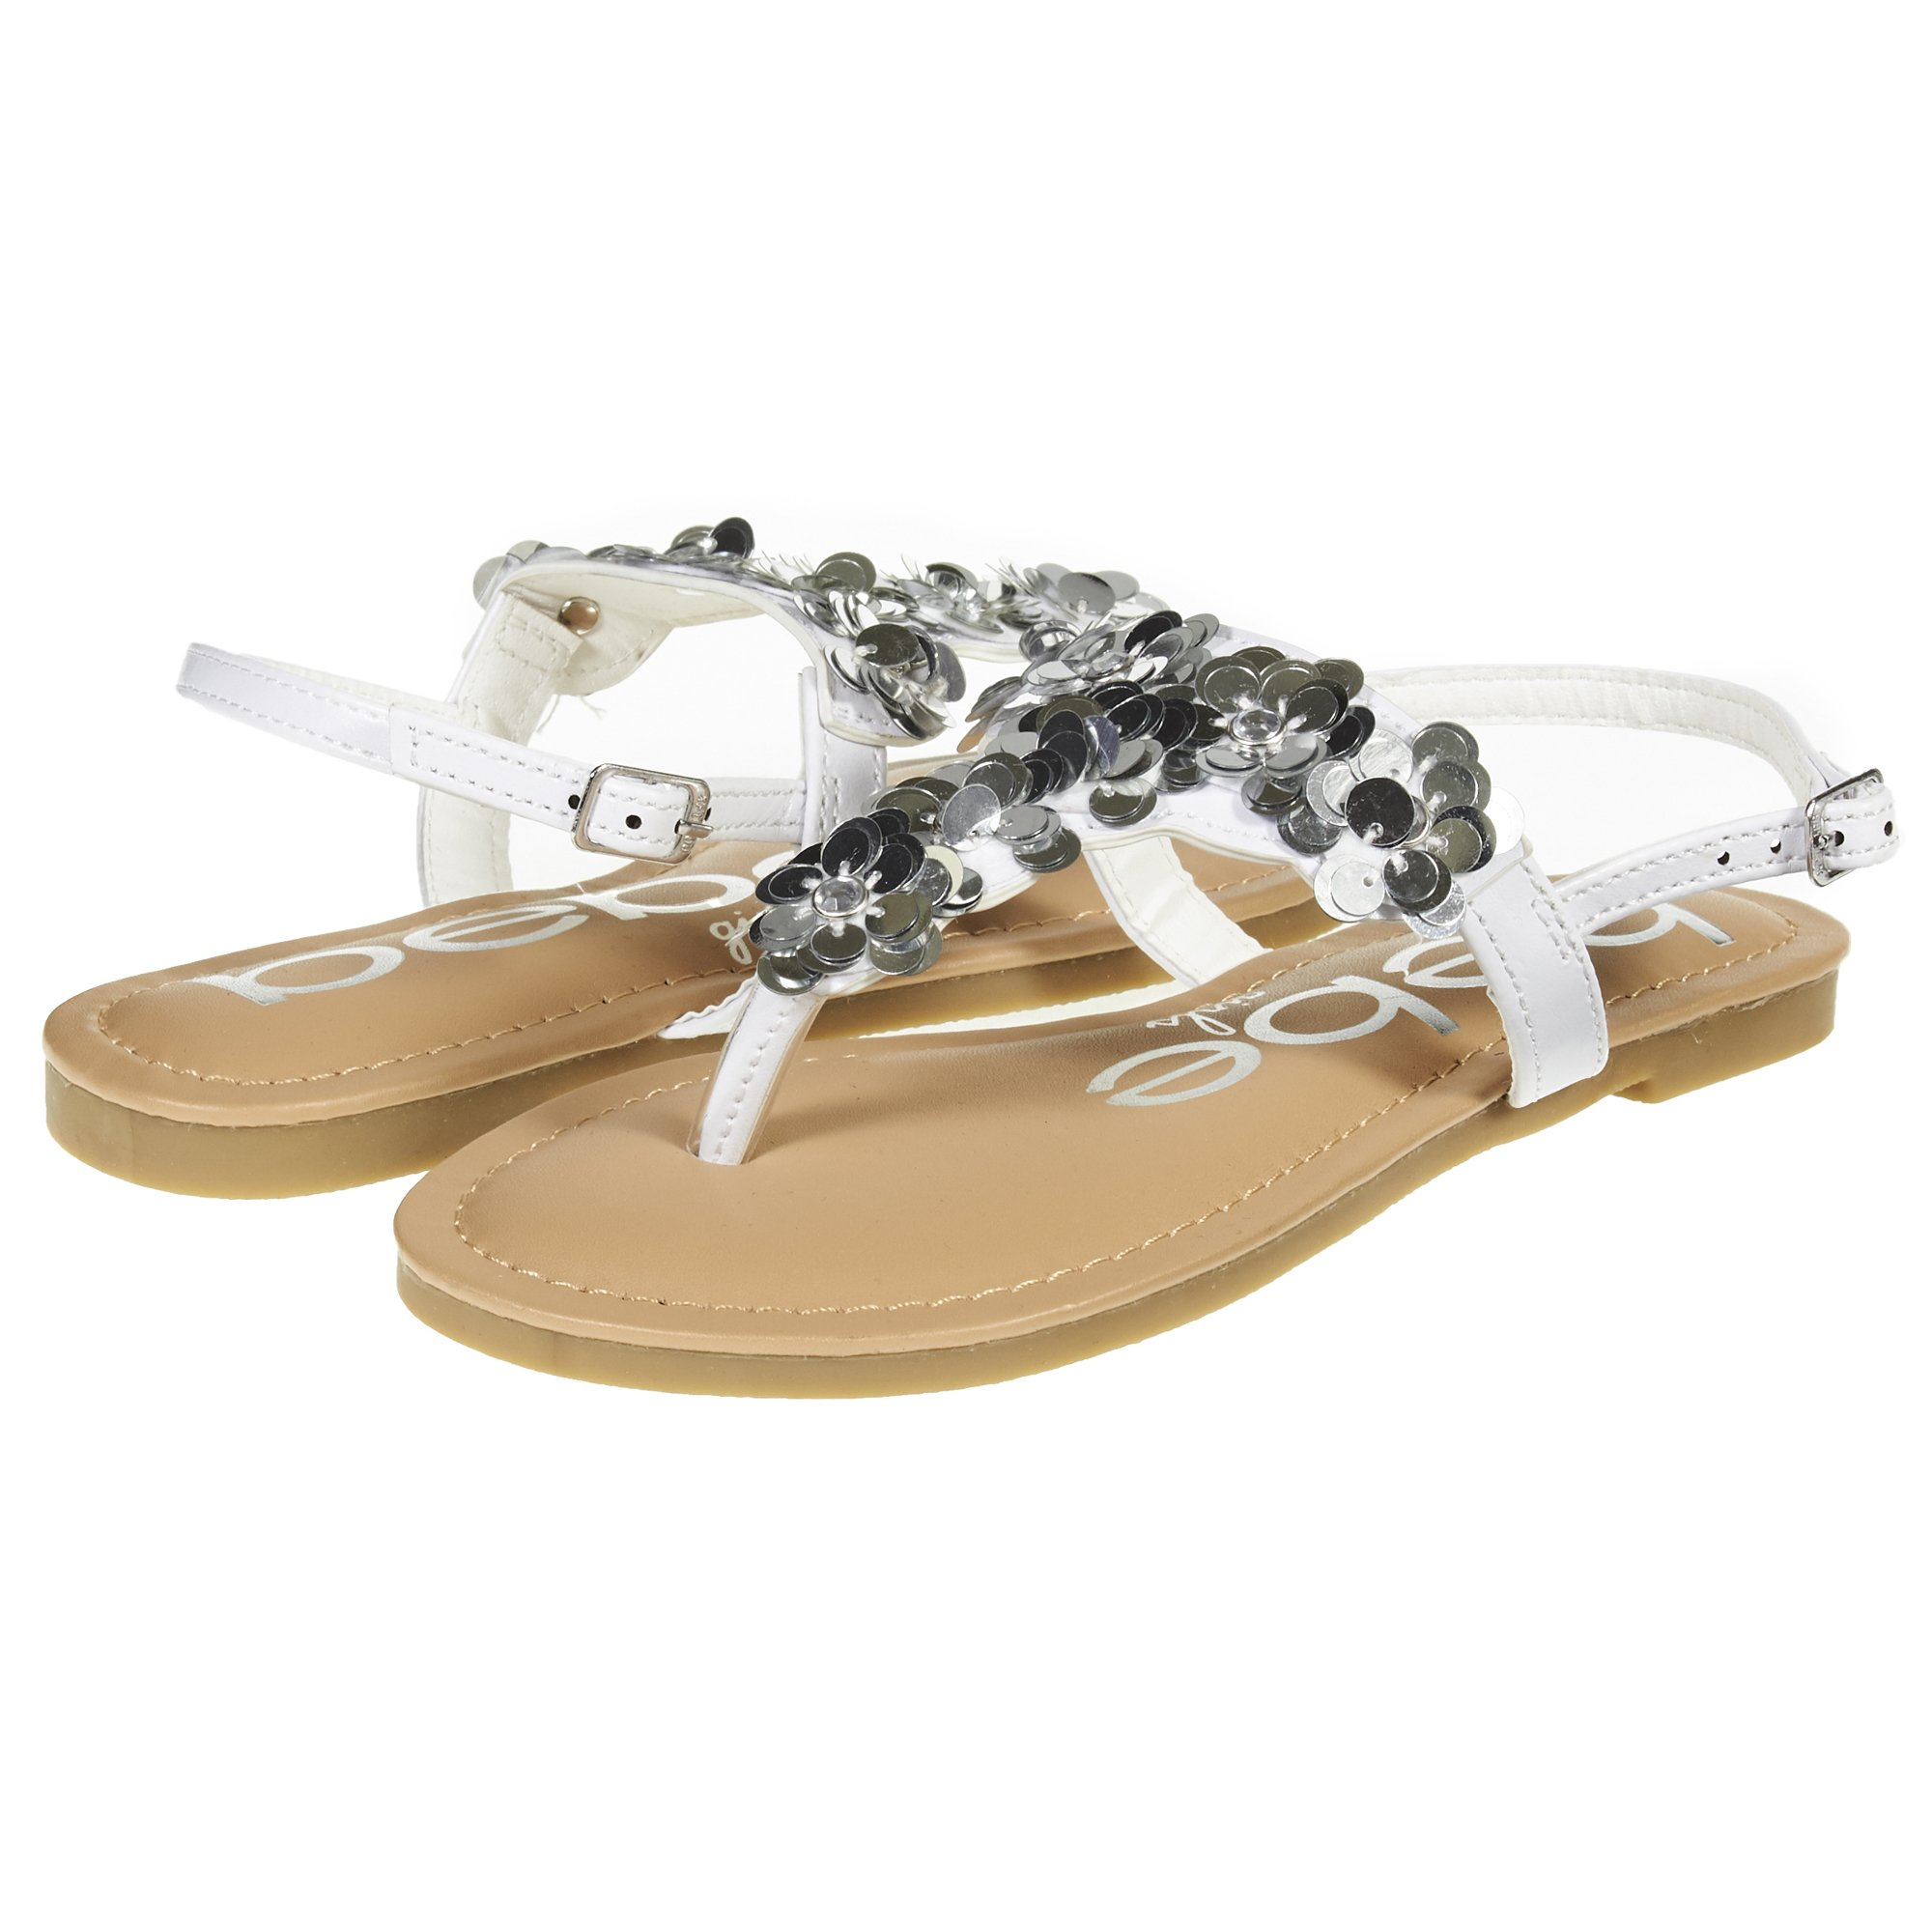 bebe Girls Big Kid Summer Flat Slingback Sandals T Strap Thong Shoes with Flowers Size 11 White/Silver